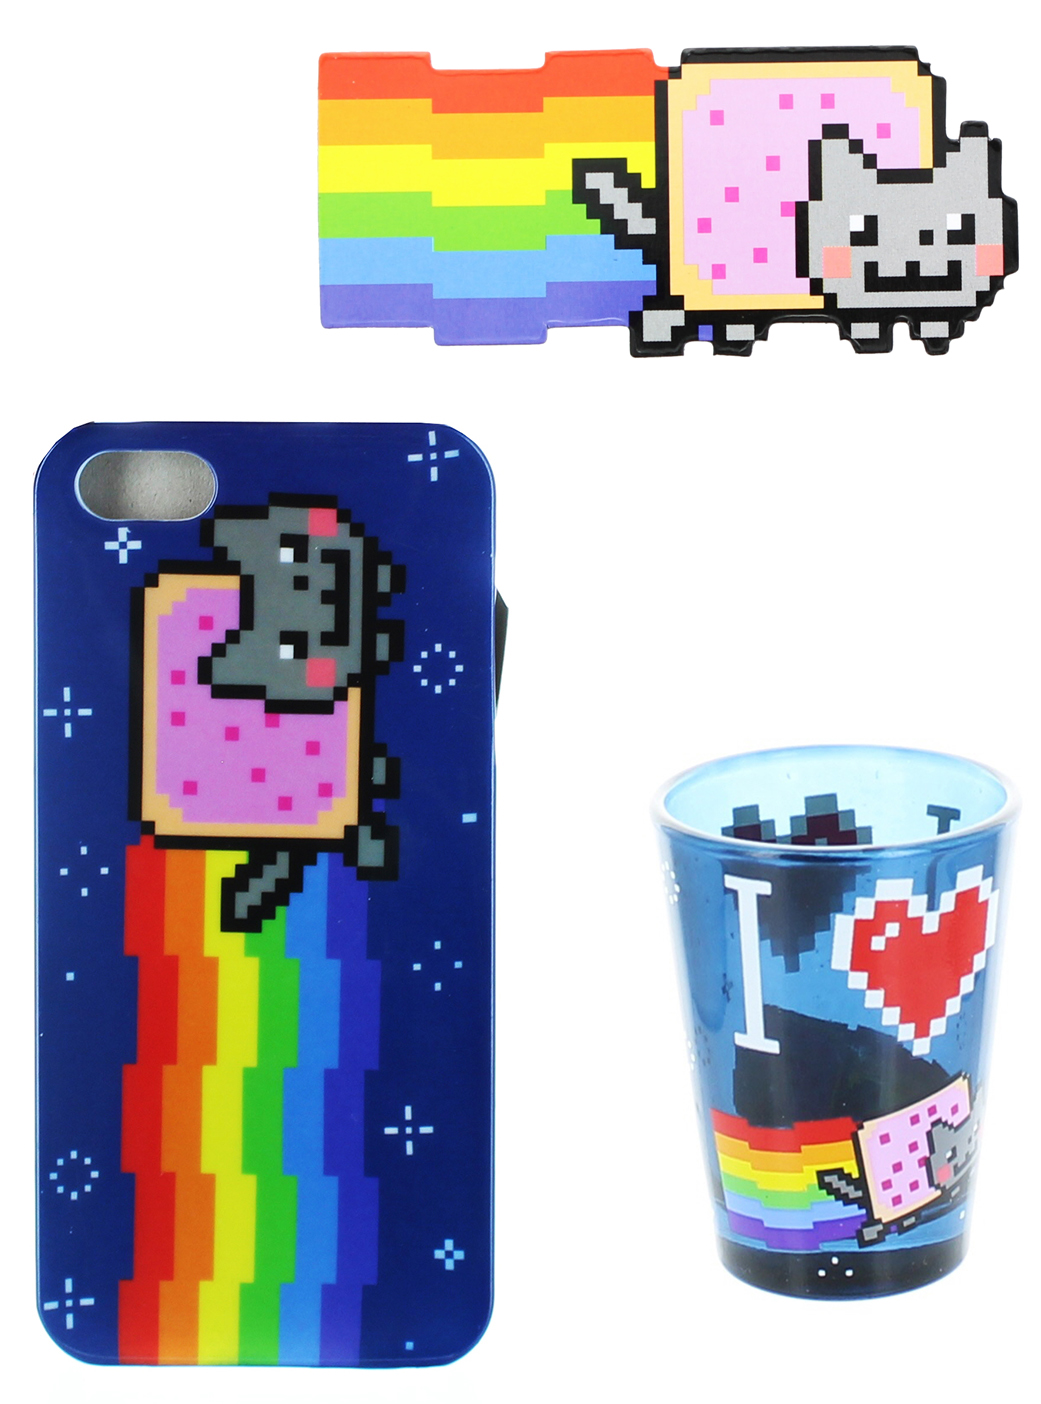 1041x1404 - Nyan Cat iPhone 35